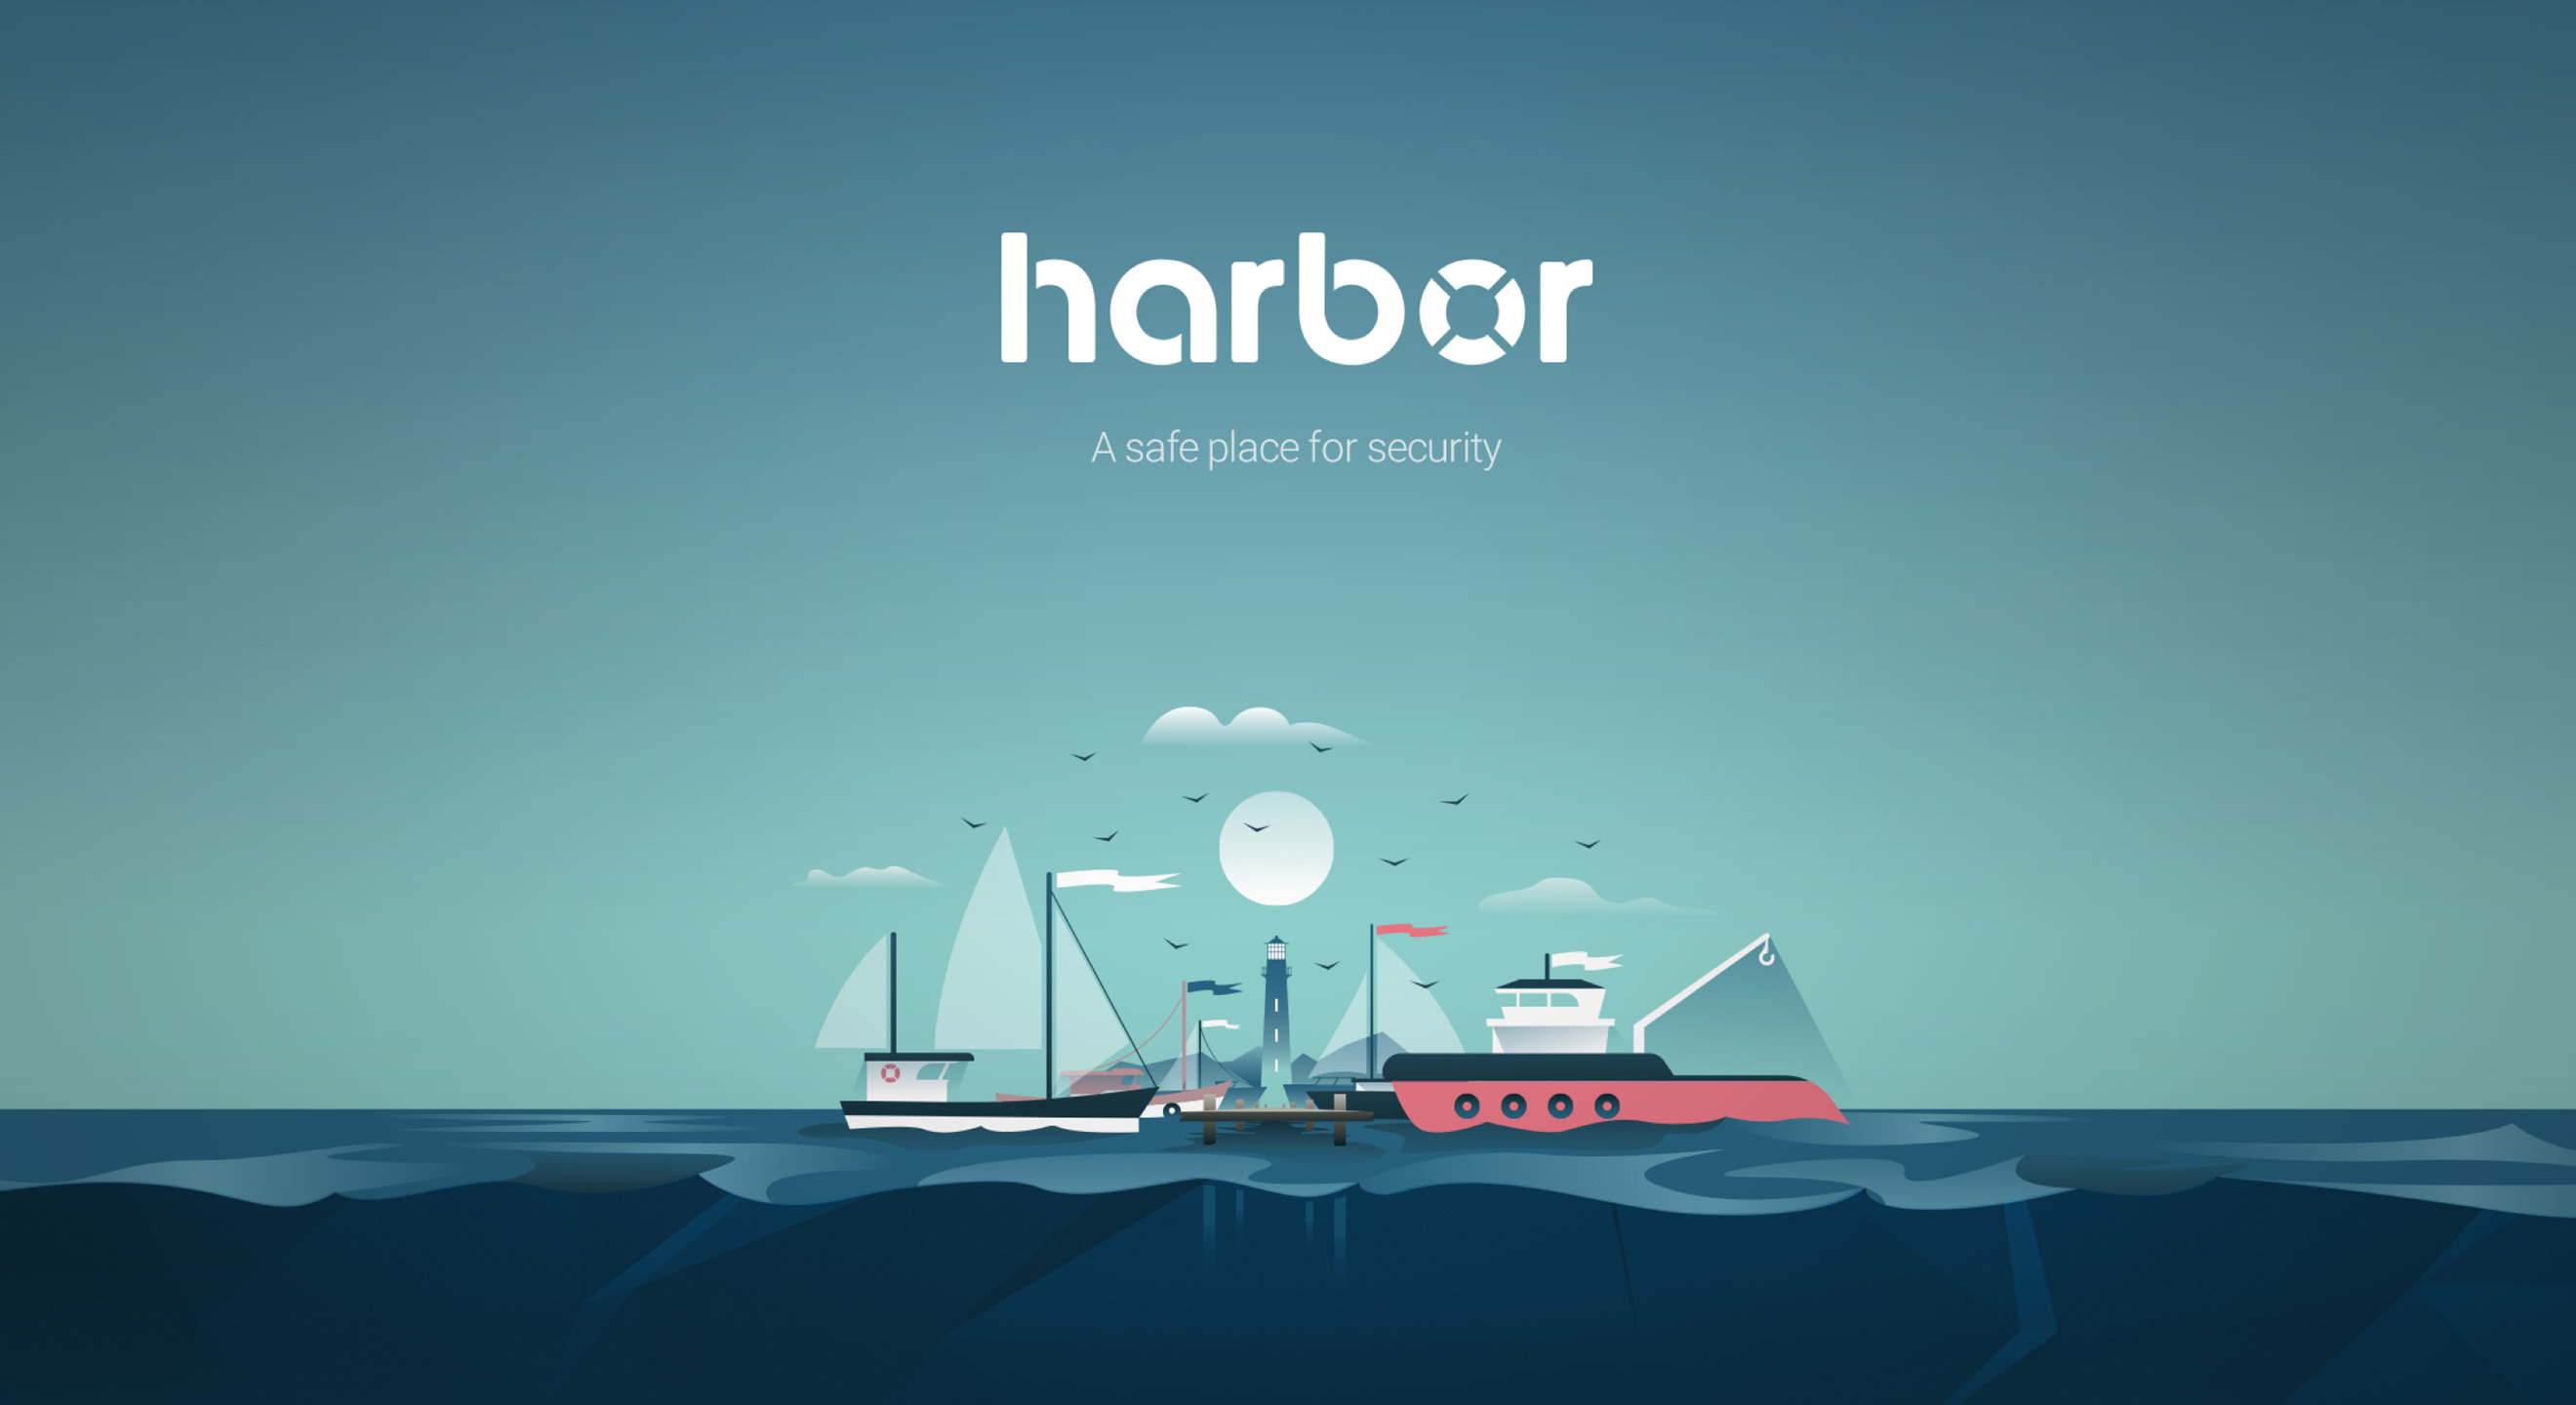 Harbor Illustration